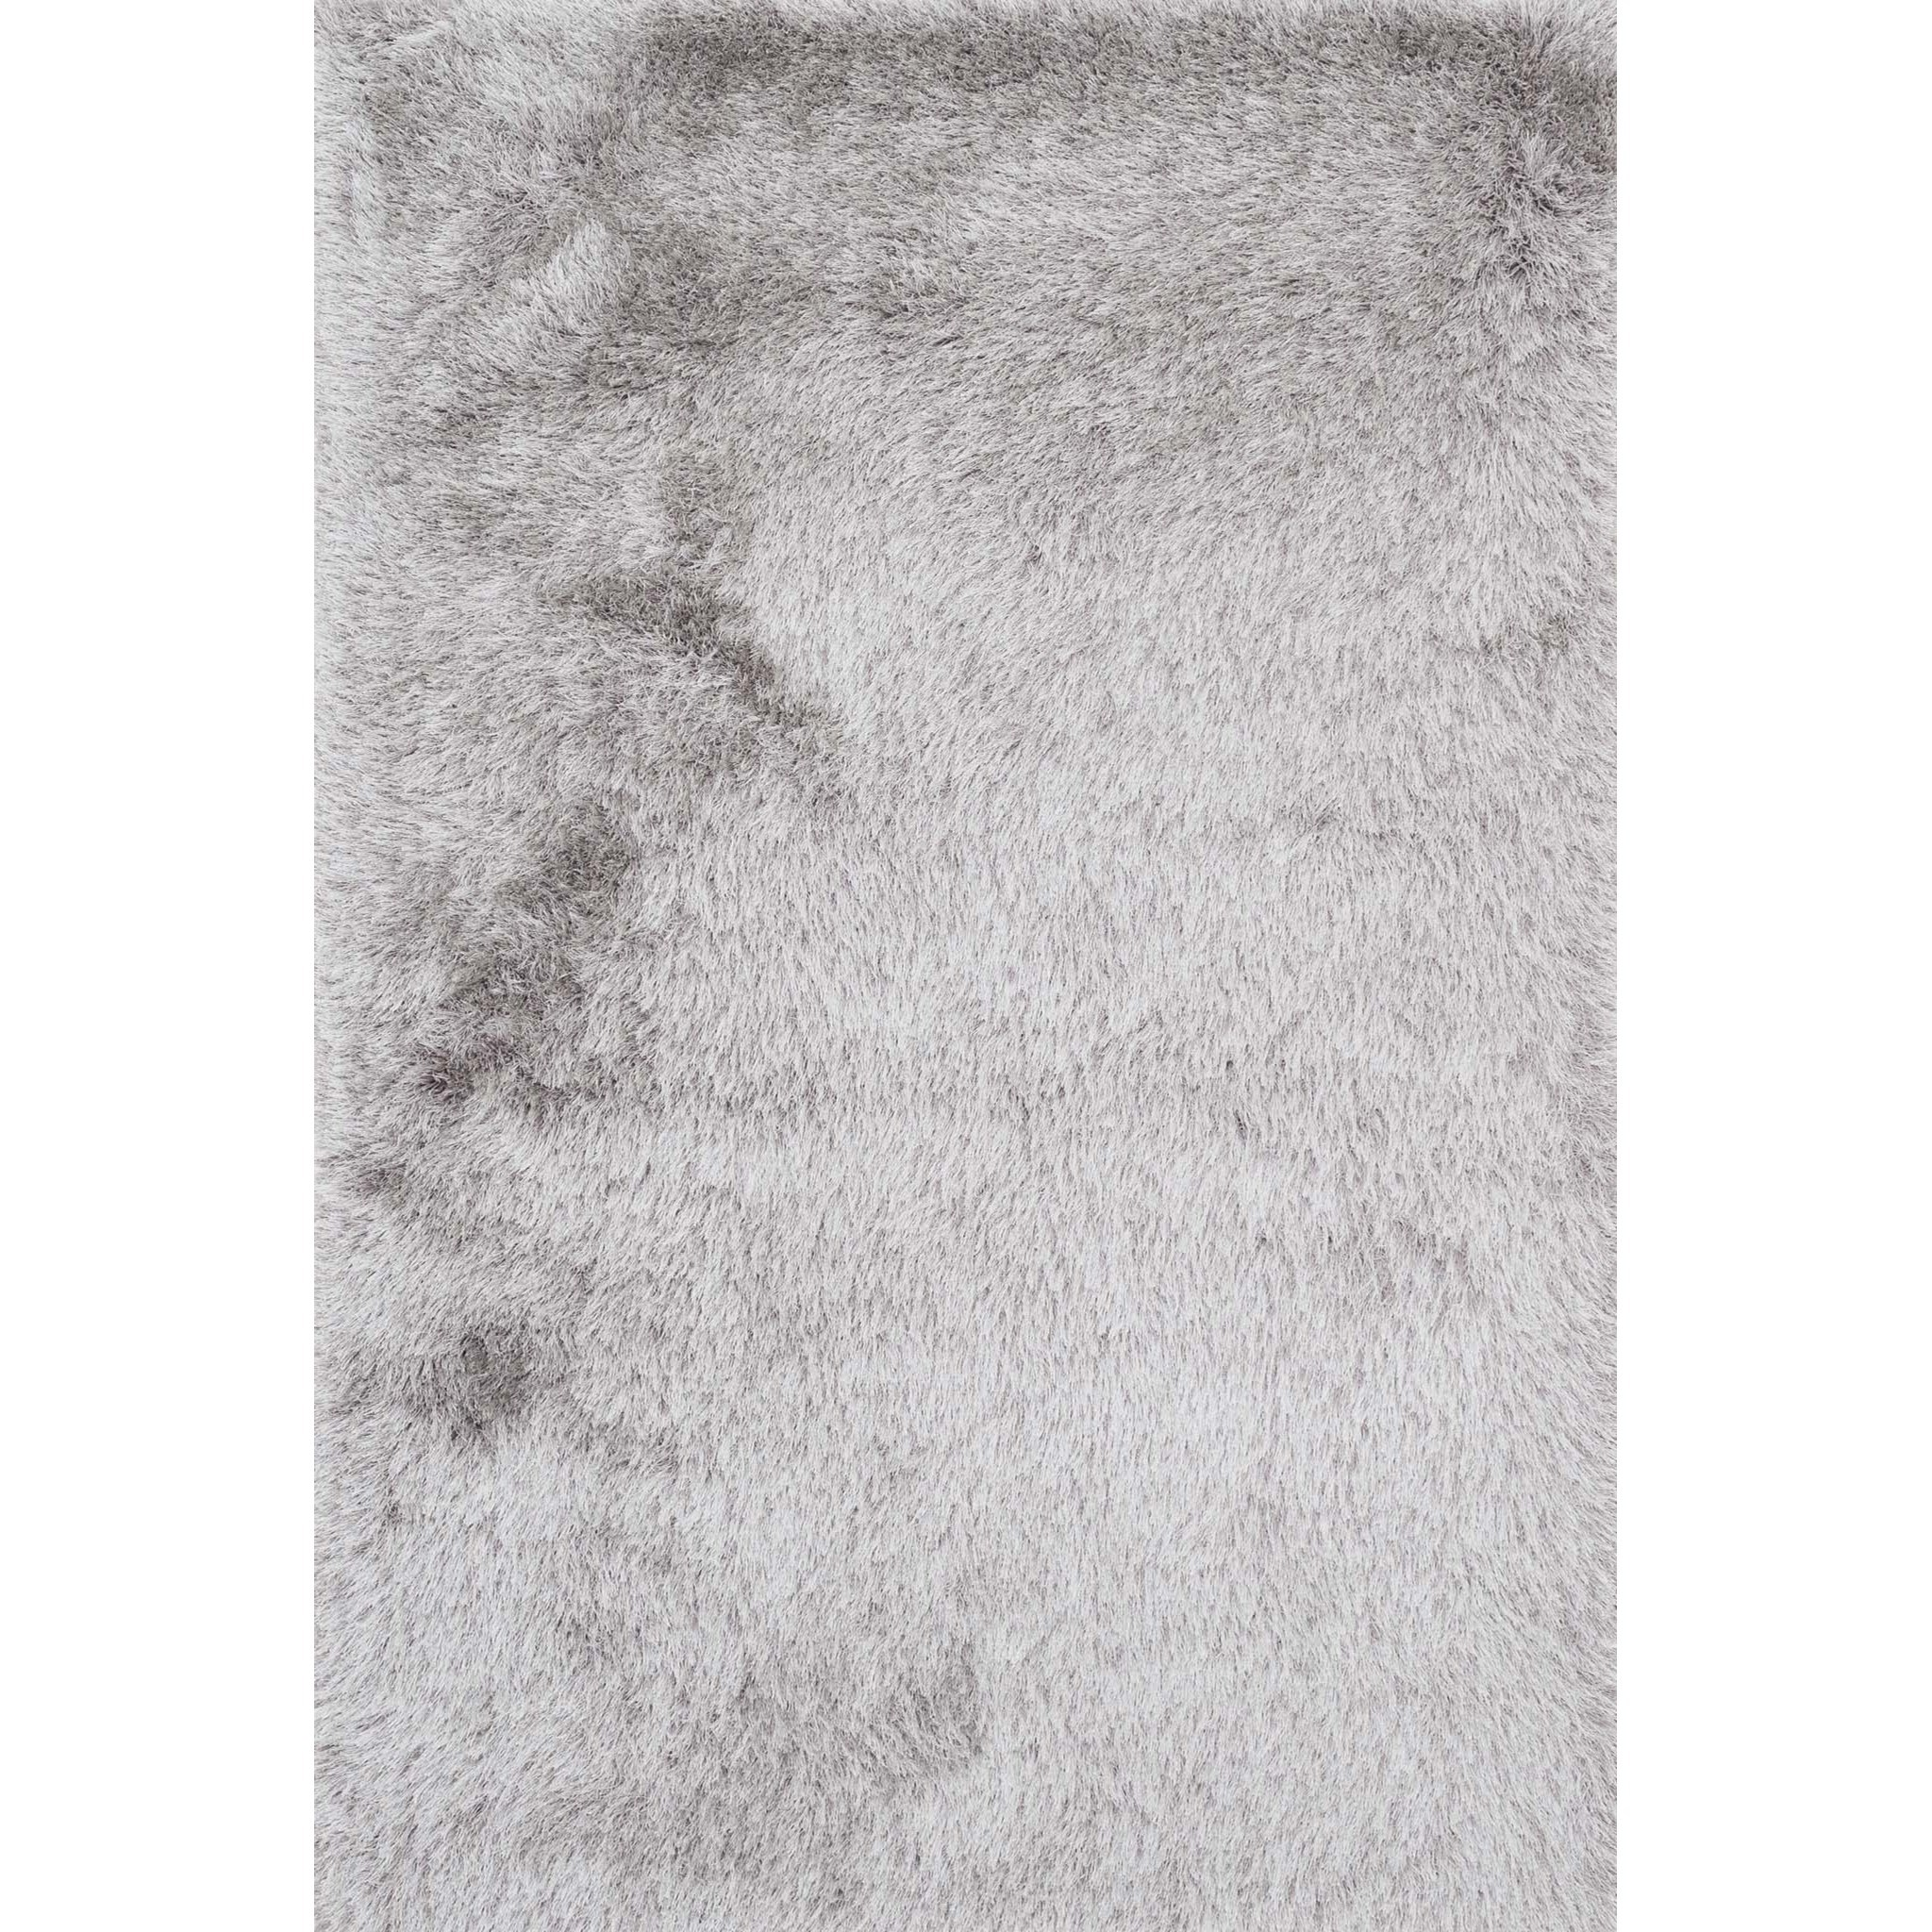 "Orian Shag 9'-3"" X 13' Area Rug by Loloi Rugs at Virginia Furniture Market"